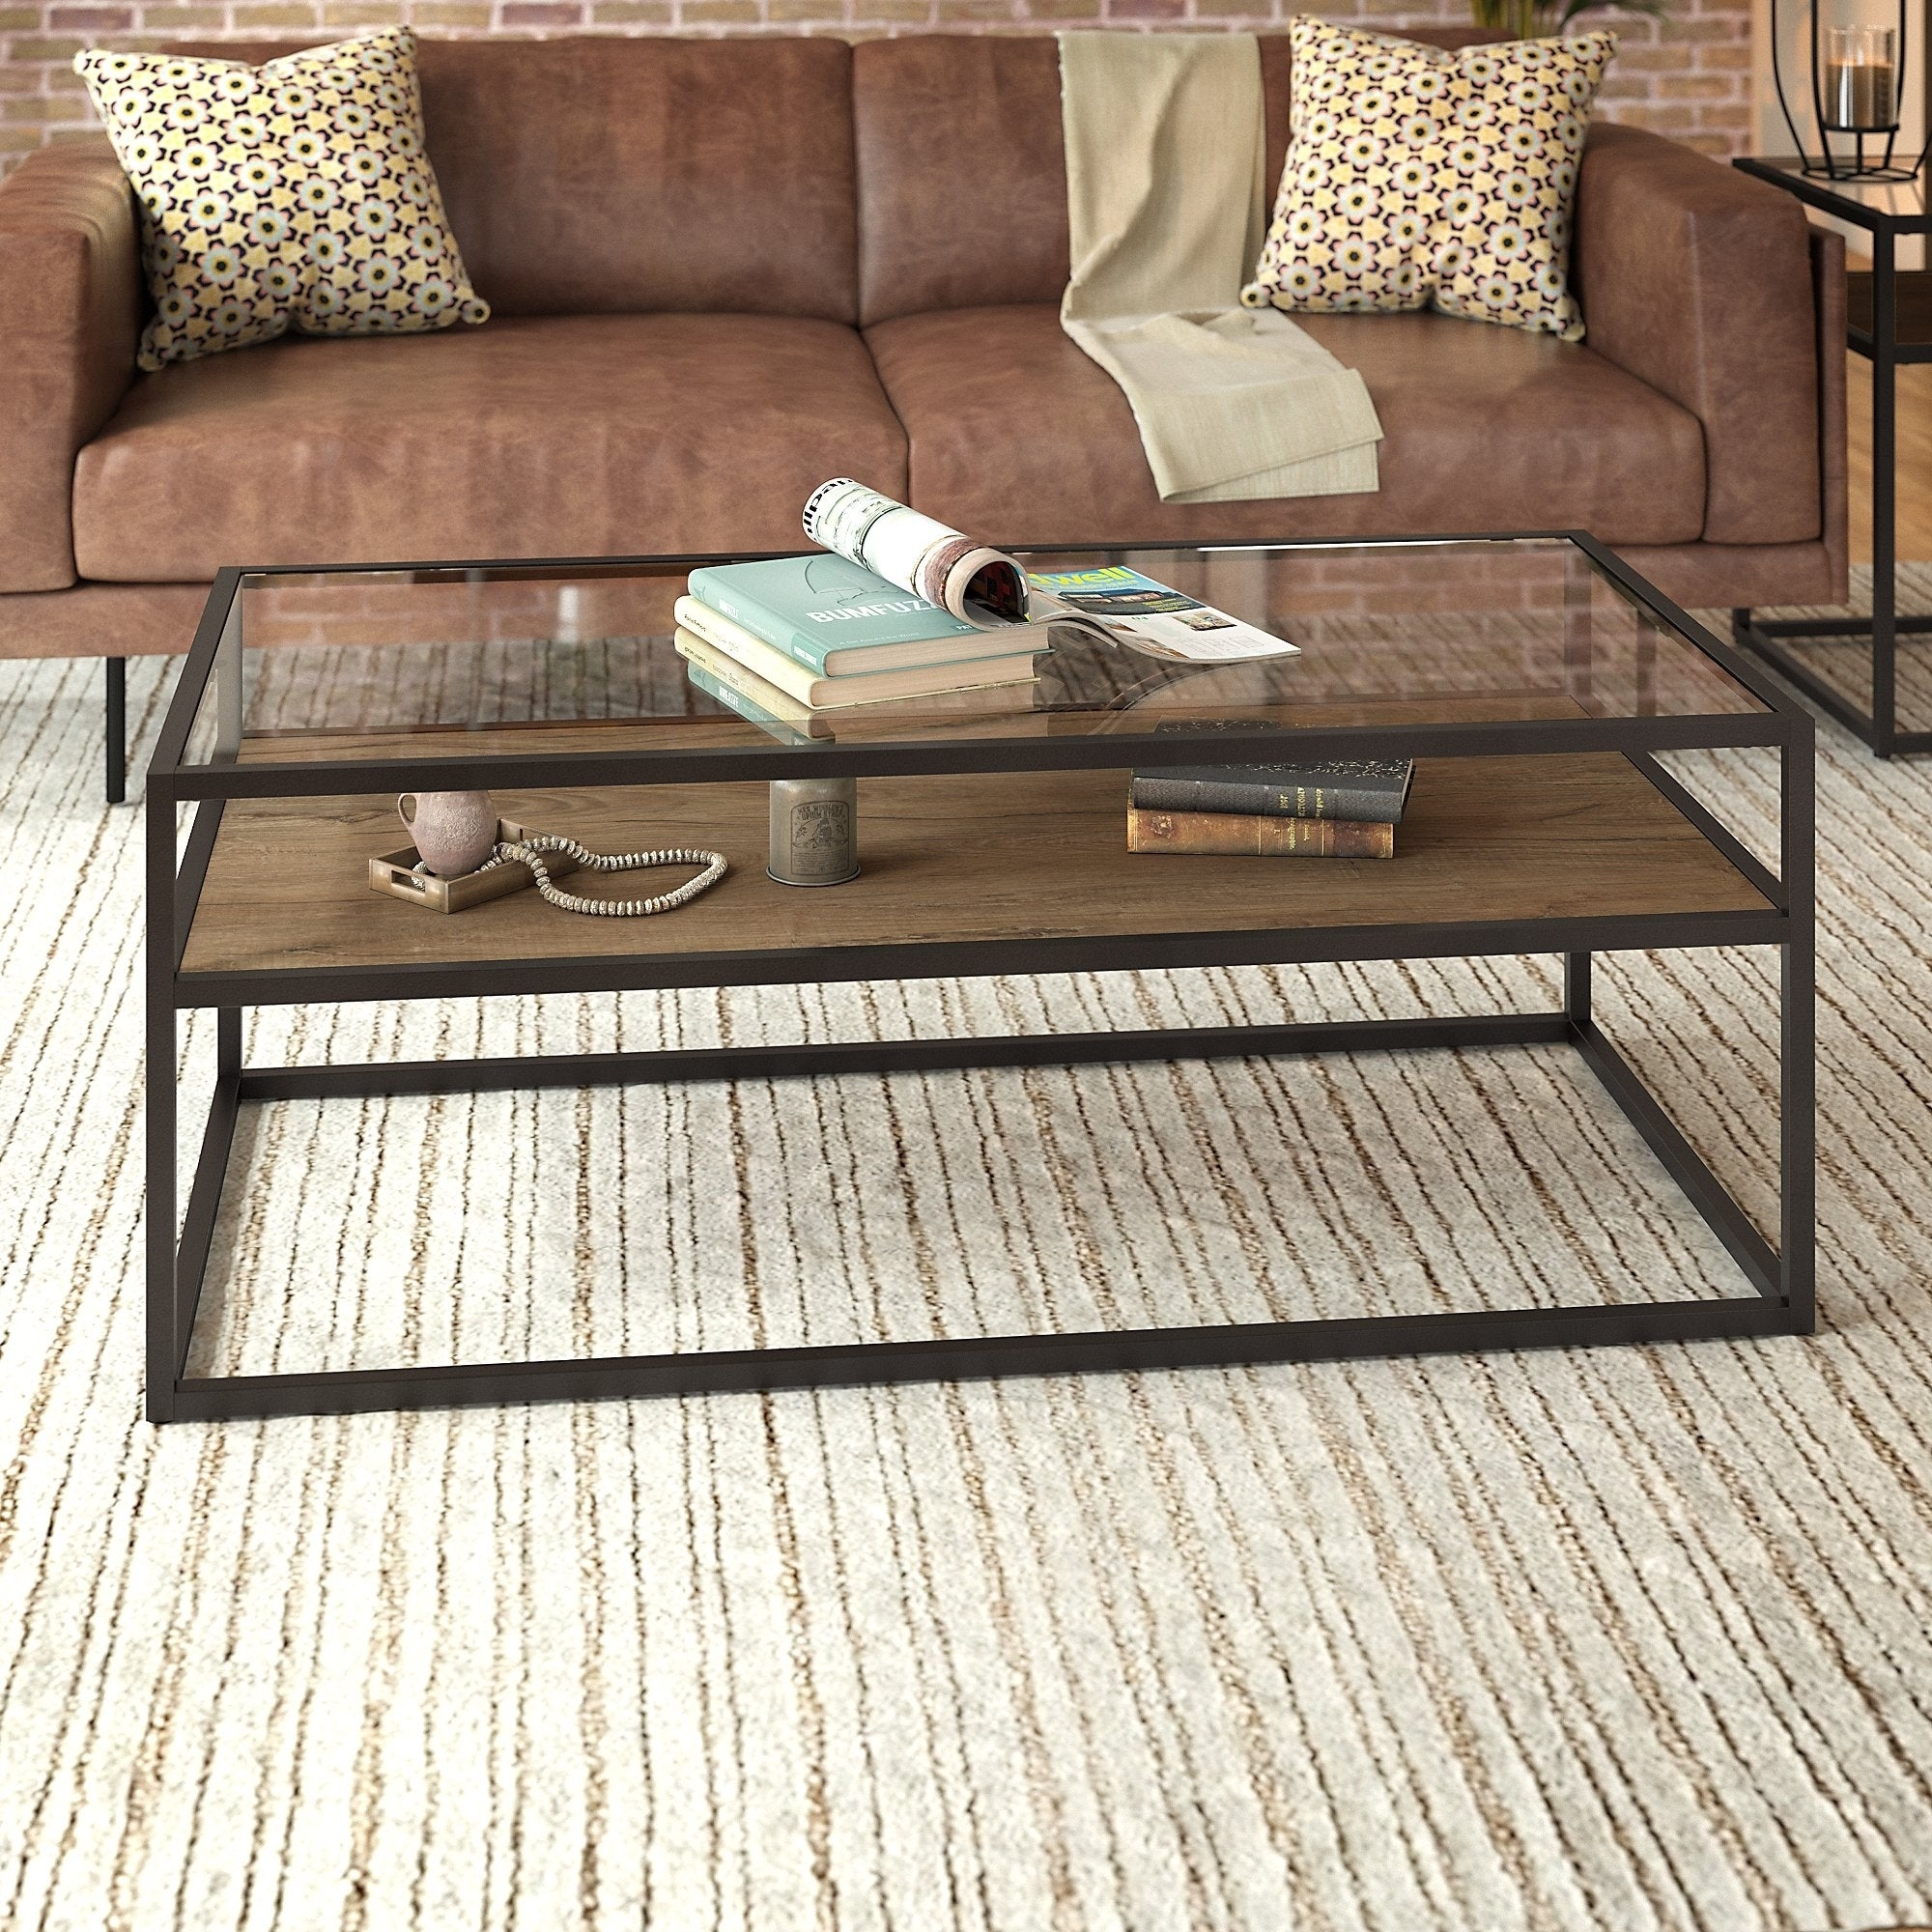 Carbon Loft Narthech Gl Top Coffee Table In Rustic Brown 47 99 L X 23 98 W 18 15 H